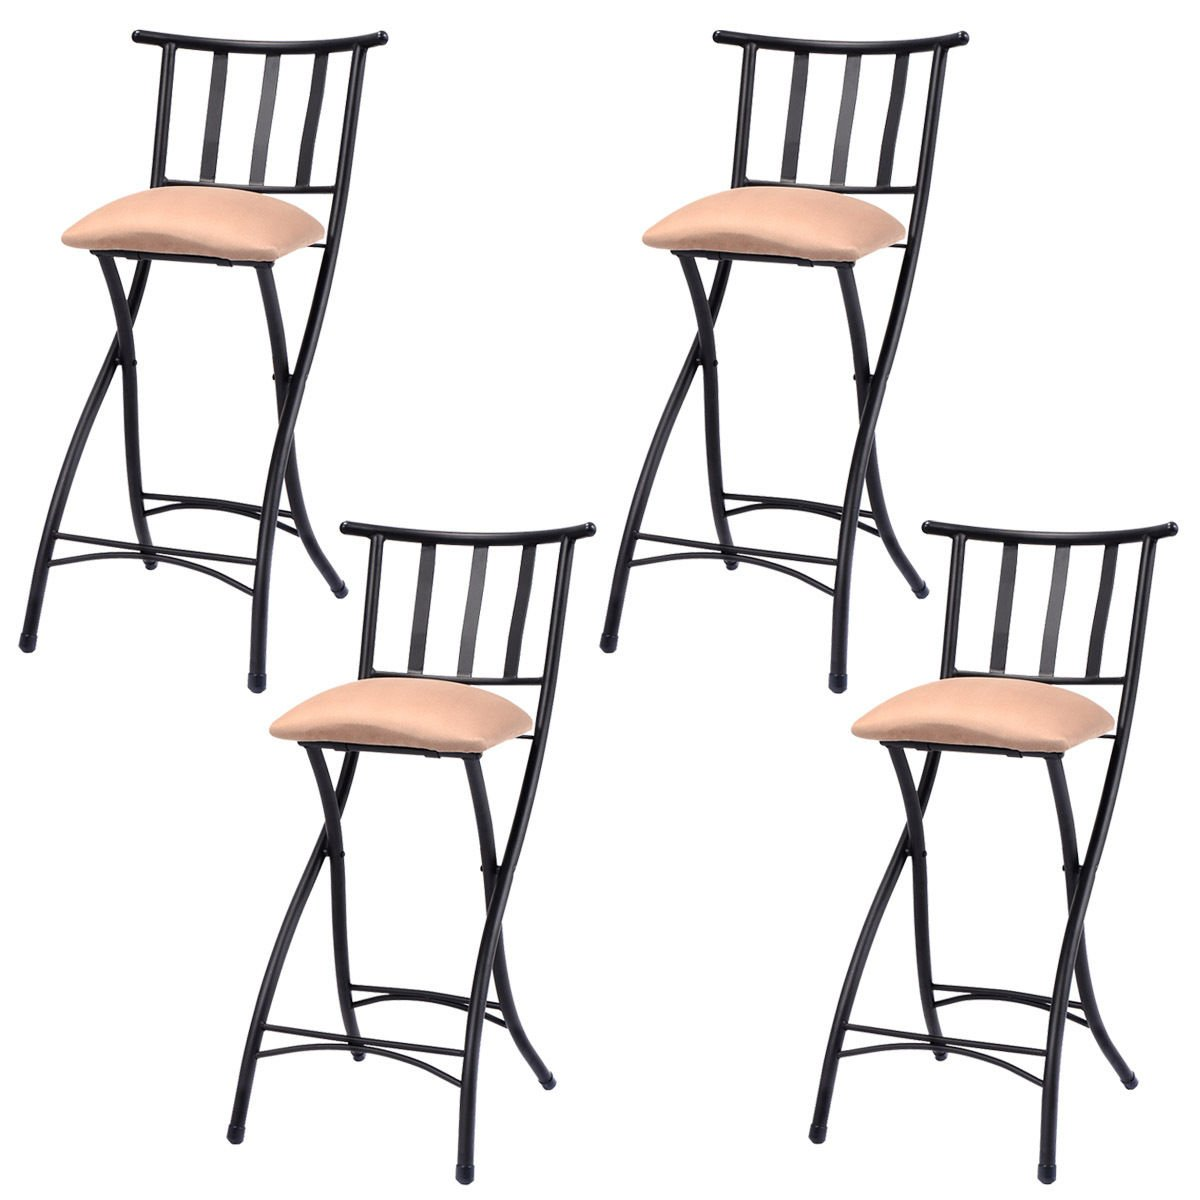 Set of 4 Folding Bar Stools 23'' Counter Height Bistro Dining Kitchen Pub Chair